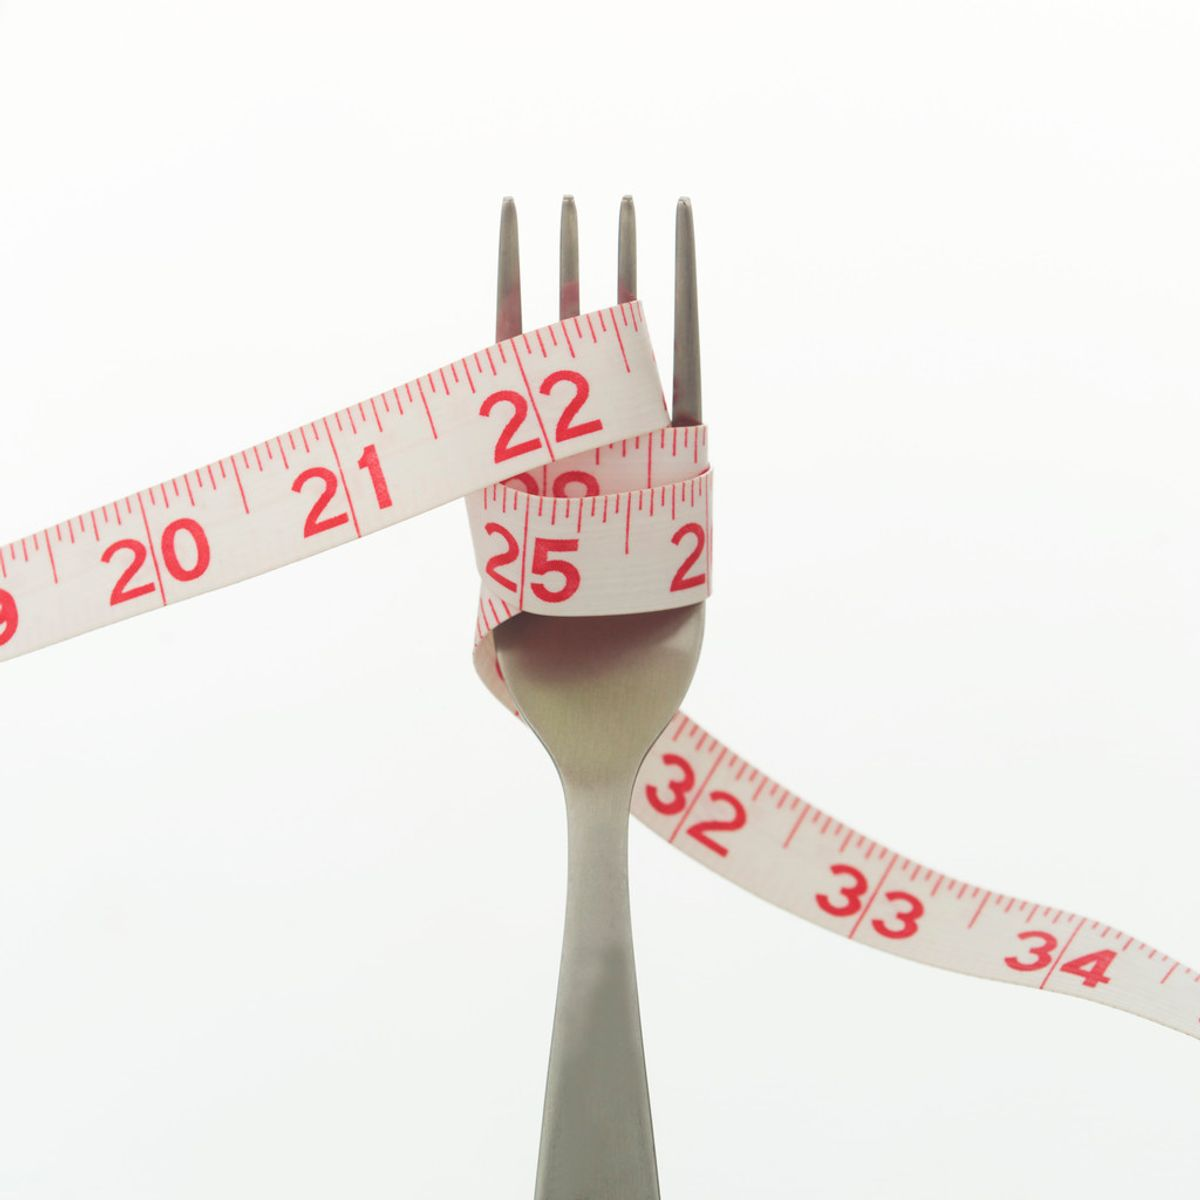 Extreme Dieting: The Downward Spiral